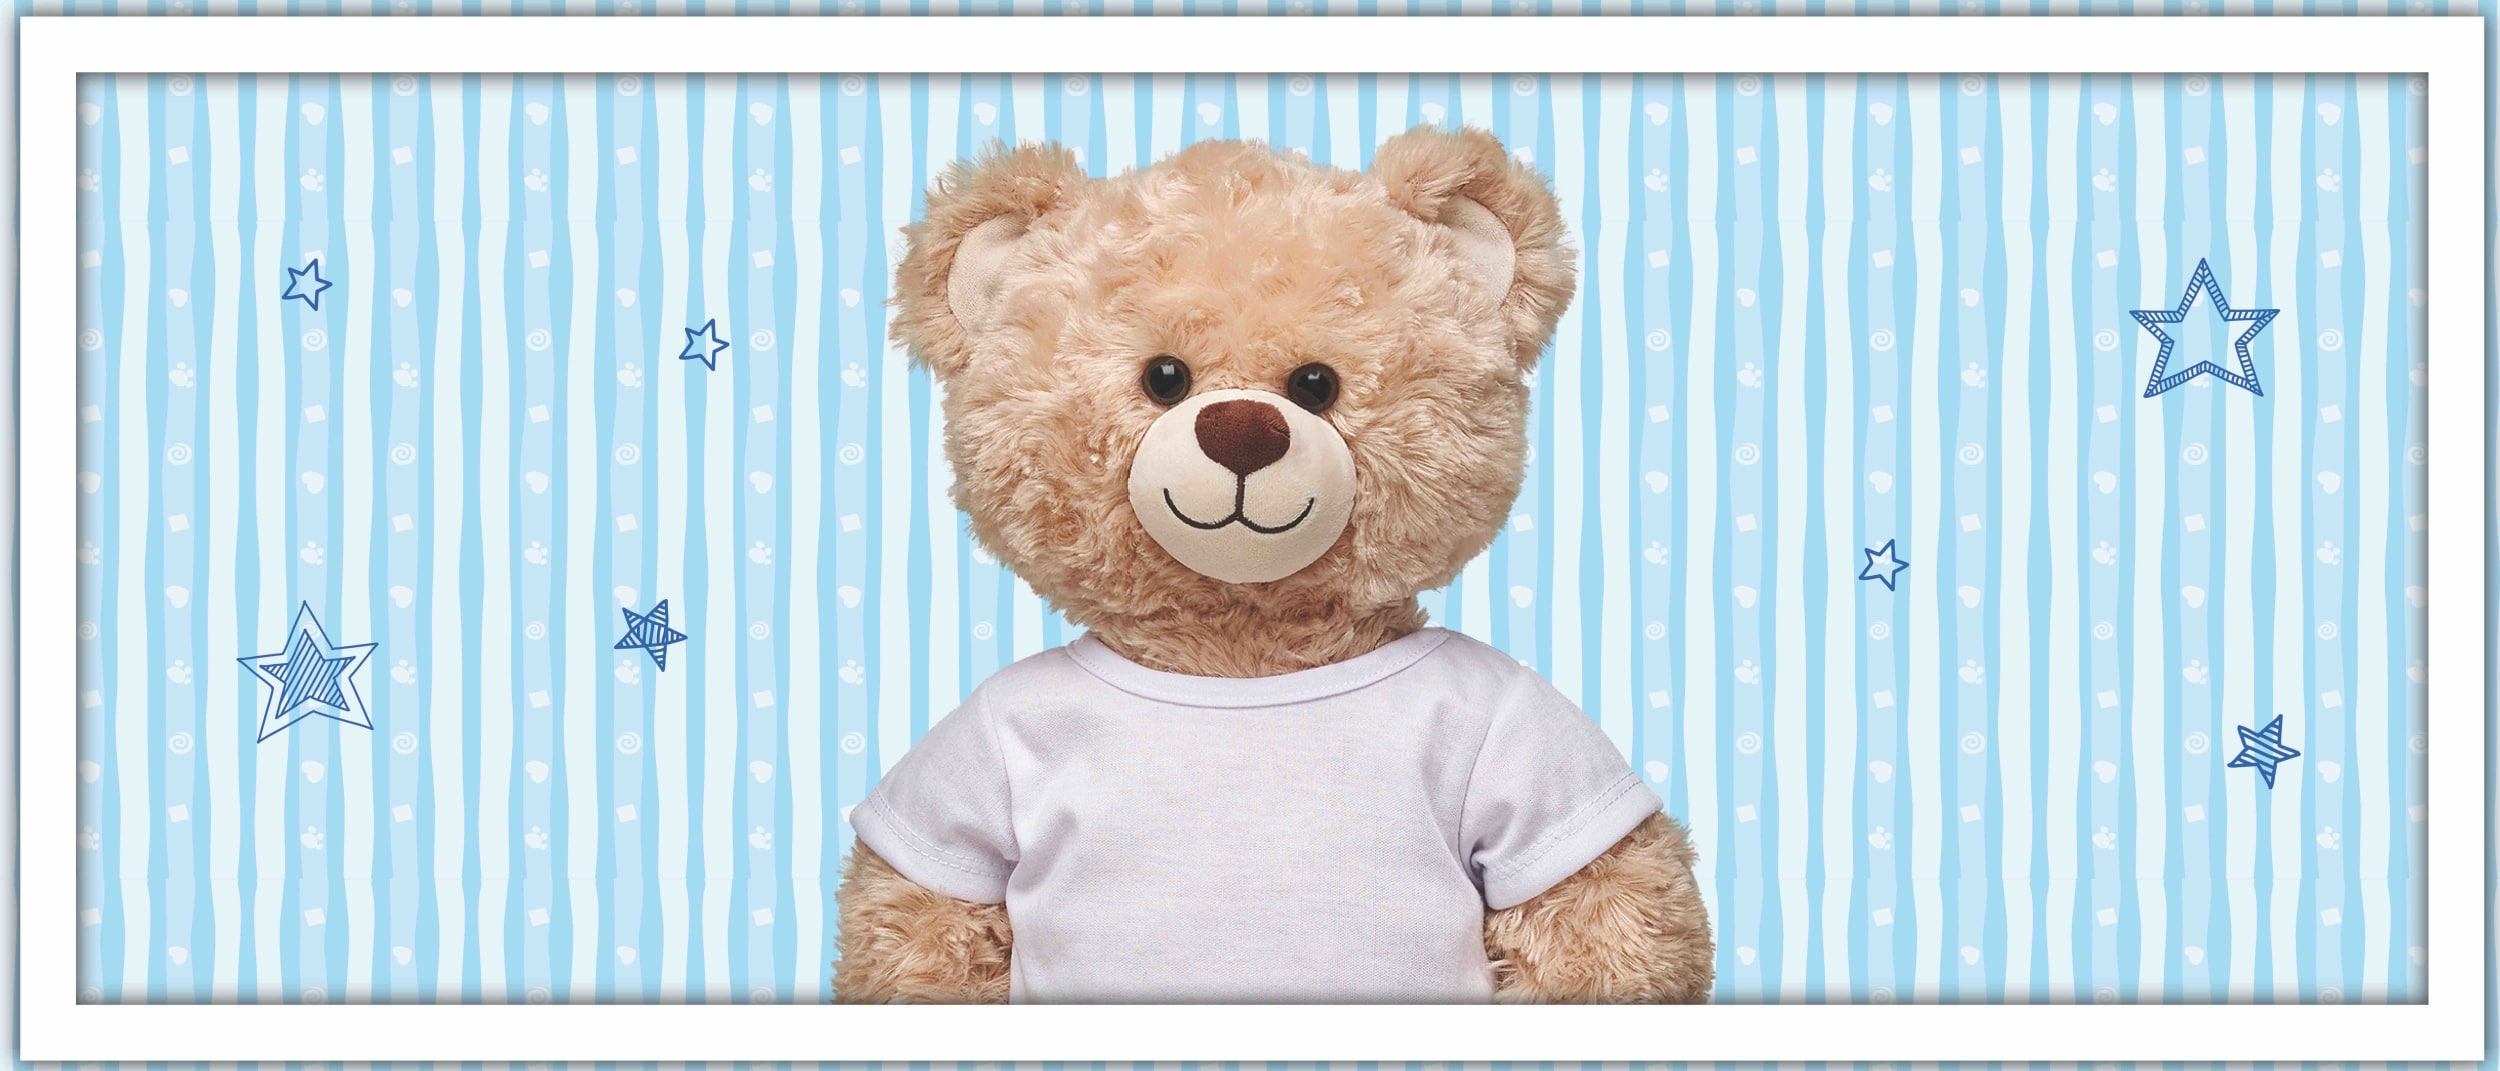 Build-A-Bear Workshop's tee shirt decorating event